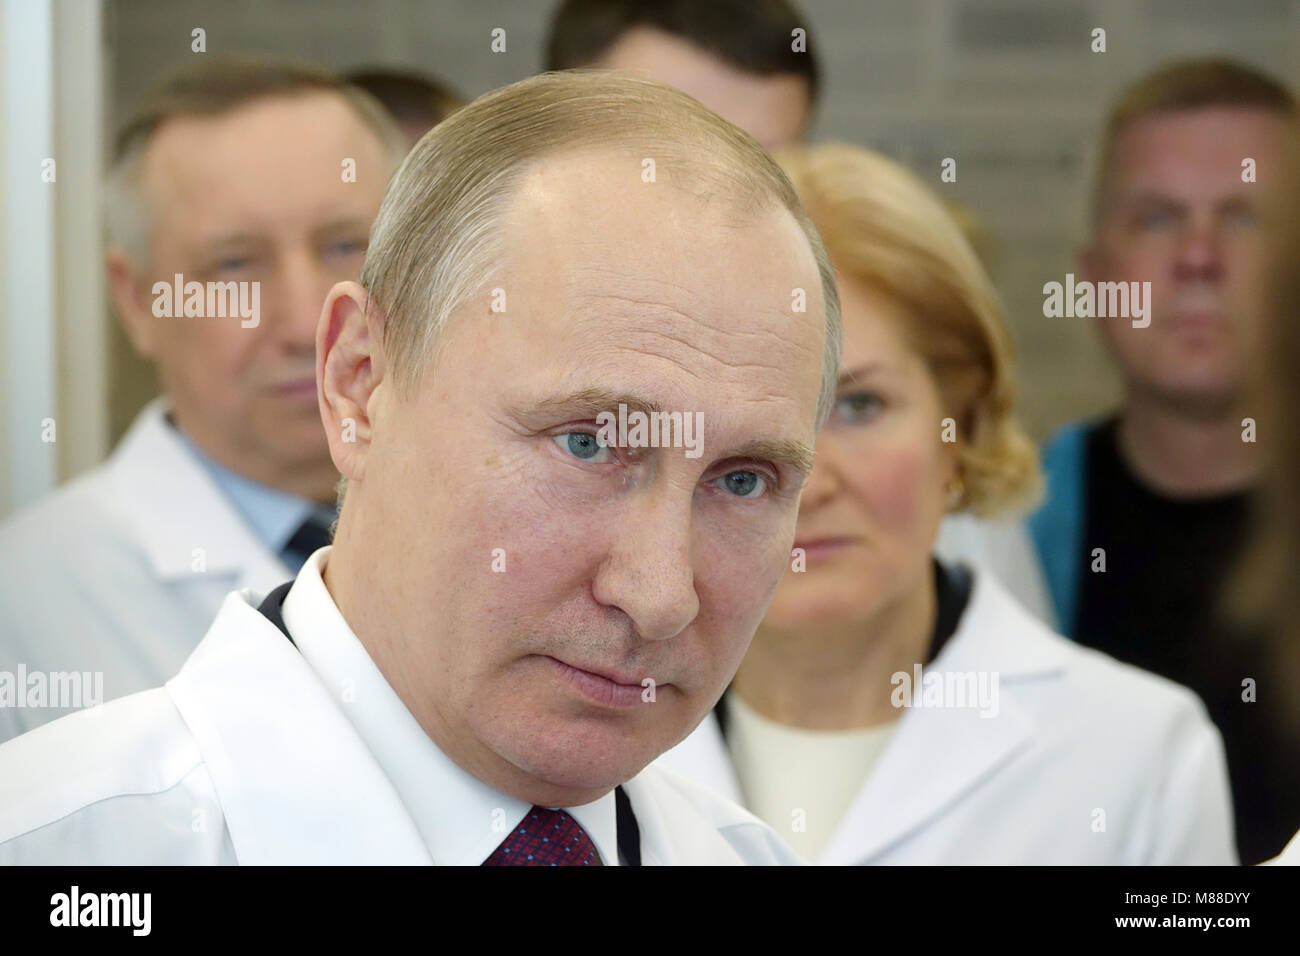 St. Petersburg, Russia. 16 March 2018,Russian President Vladimir Putin speaks to employees of the Almasov National Stock Photo